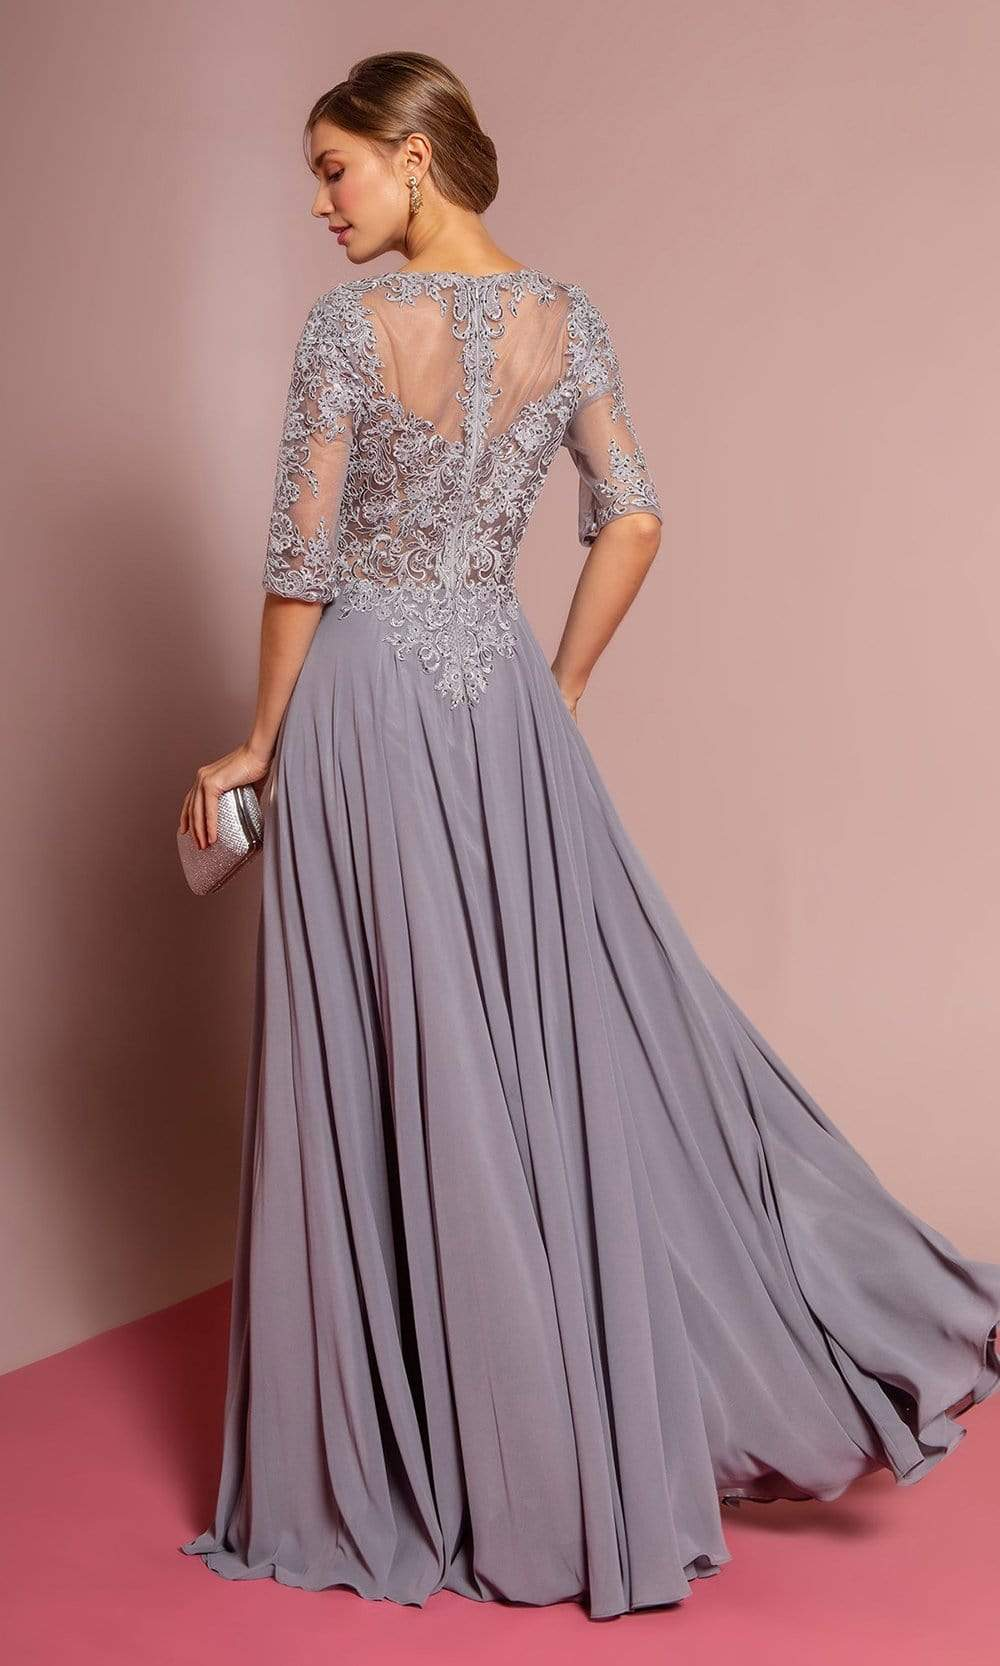 Elizabeth K - GL2681 Half Sleeve Embroidered Illusion Lace Gown Special Occasion Dress XS / Silver